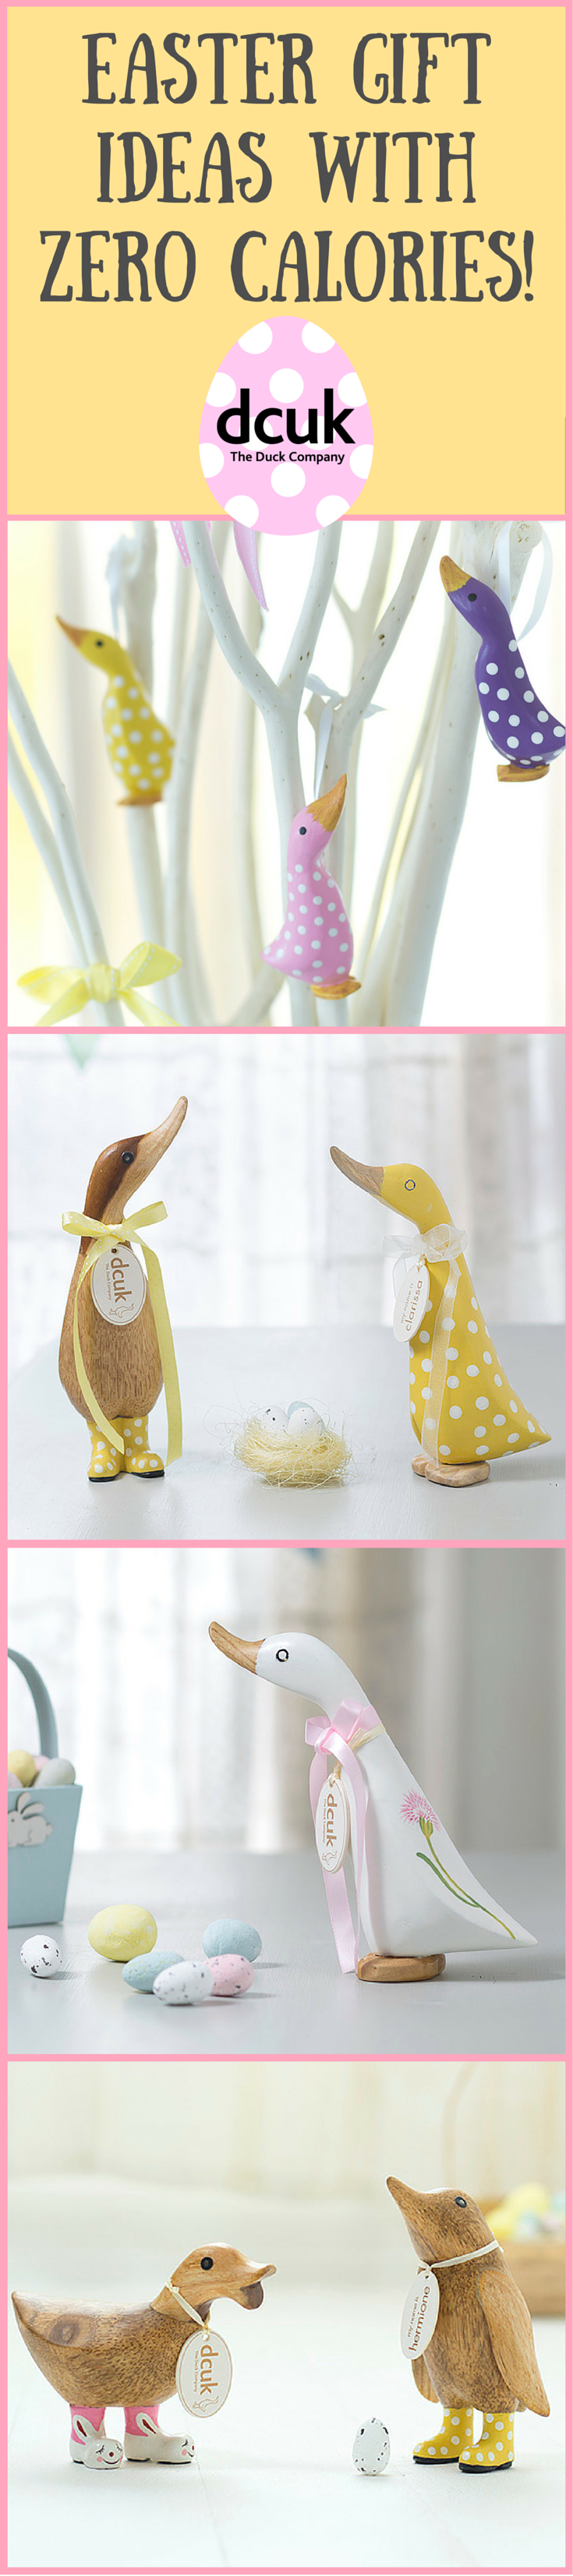 Easter gift ideas with zero calories this easter why not give a easter gift ideas with zero calories this easter why not give a gift that will last far longer than a chocolate egg our range of ducks and penguins make negle Image collections